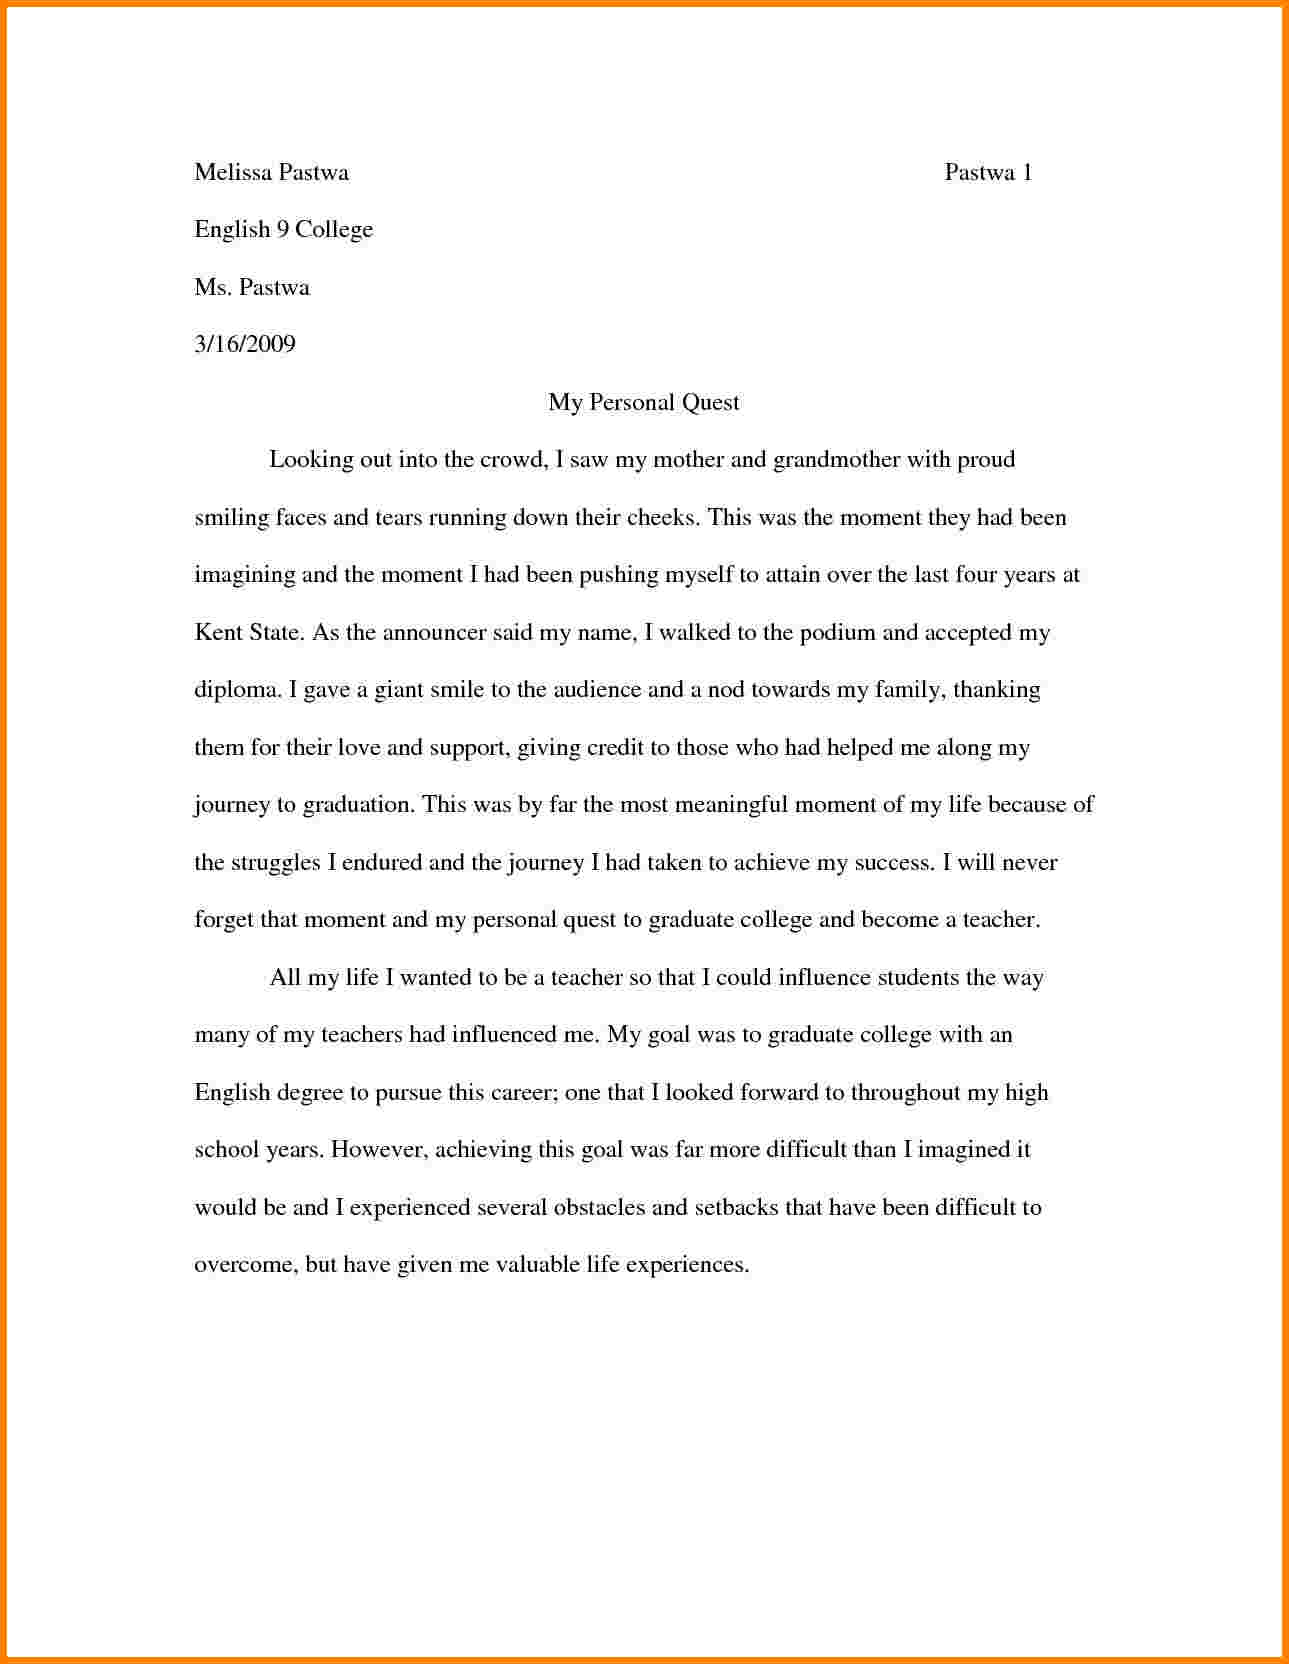 020 3341381556 How To Write Proposal20nt Essay Topics Buy Researchs Cheap Examples20 Good For Awesome Research Papers Middle School Economic Paper Interesting In The Philippines Full